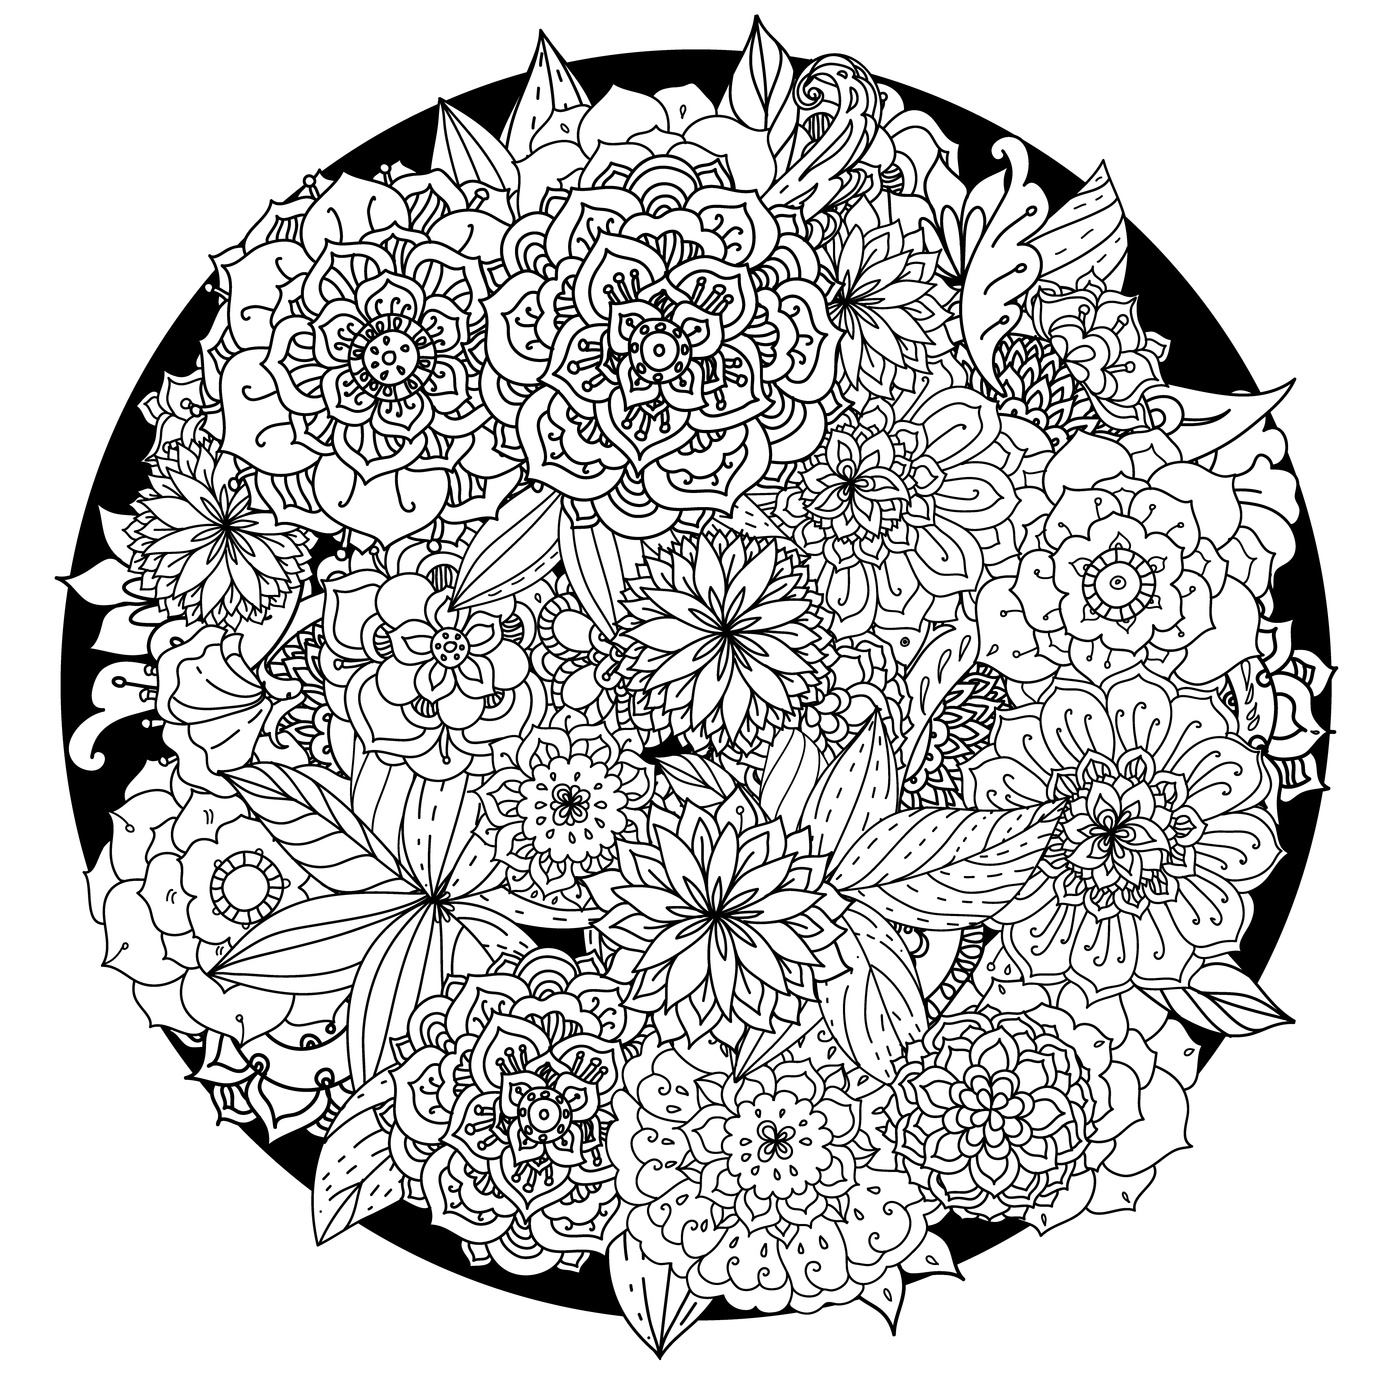 coloring art pages 63 adult coloring pages to nourish your mental visual art coloring pages